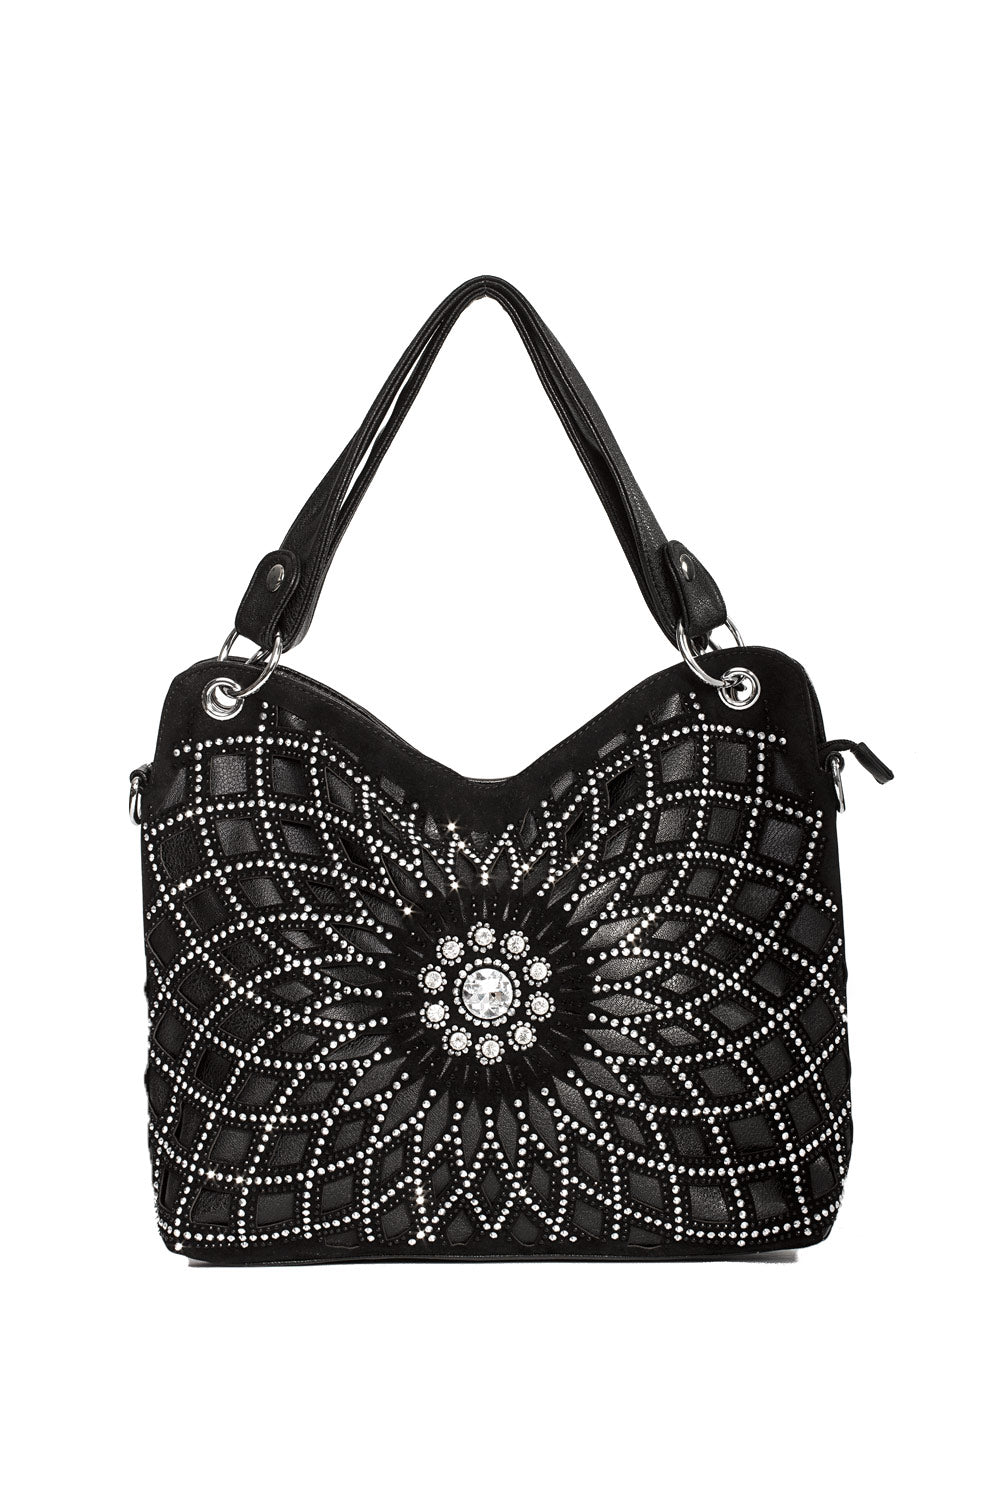 Type 4 Mesmerizing Handbag